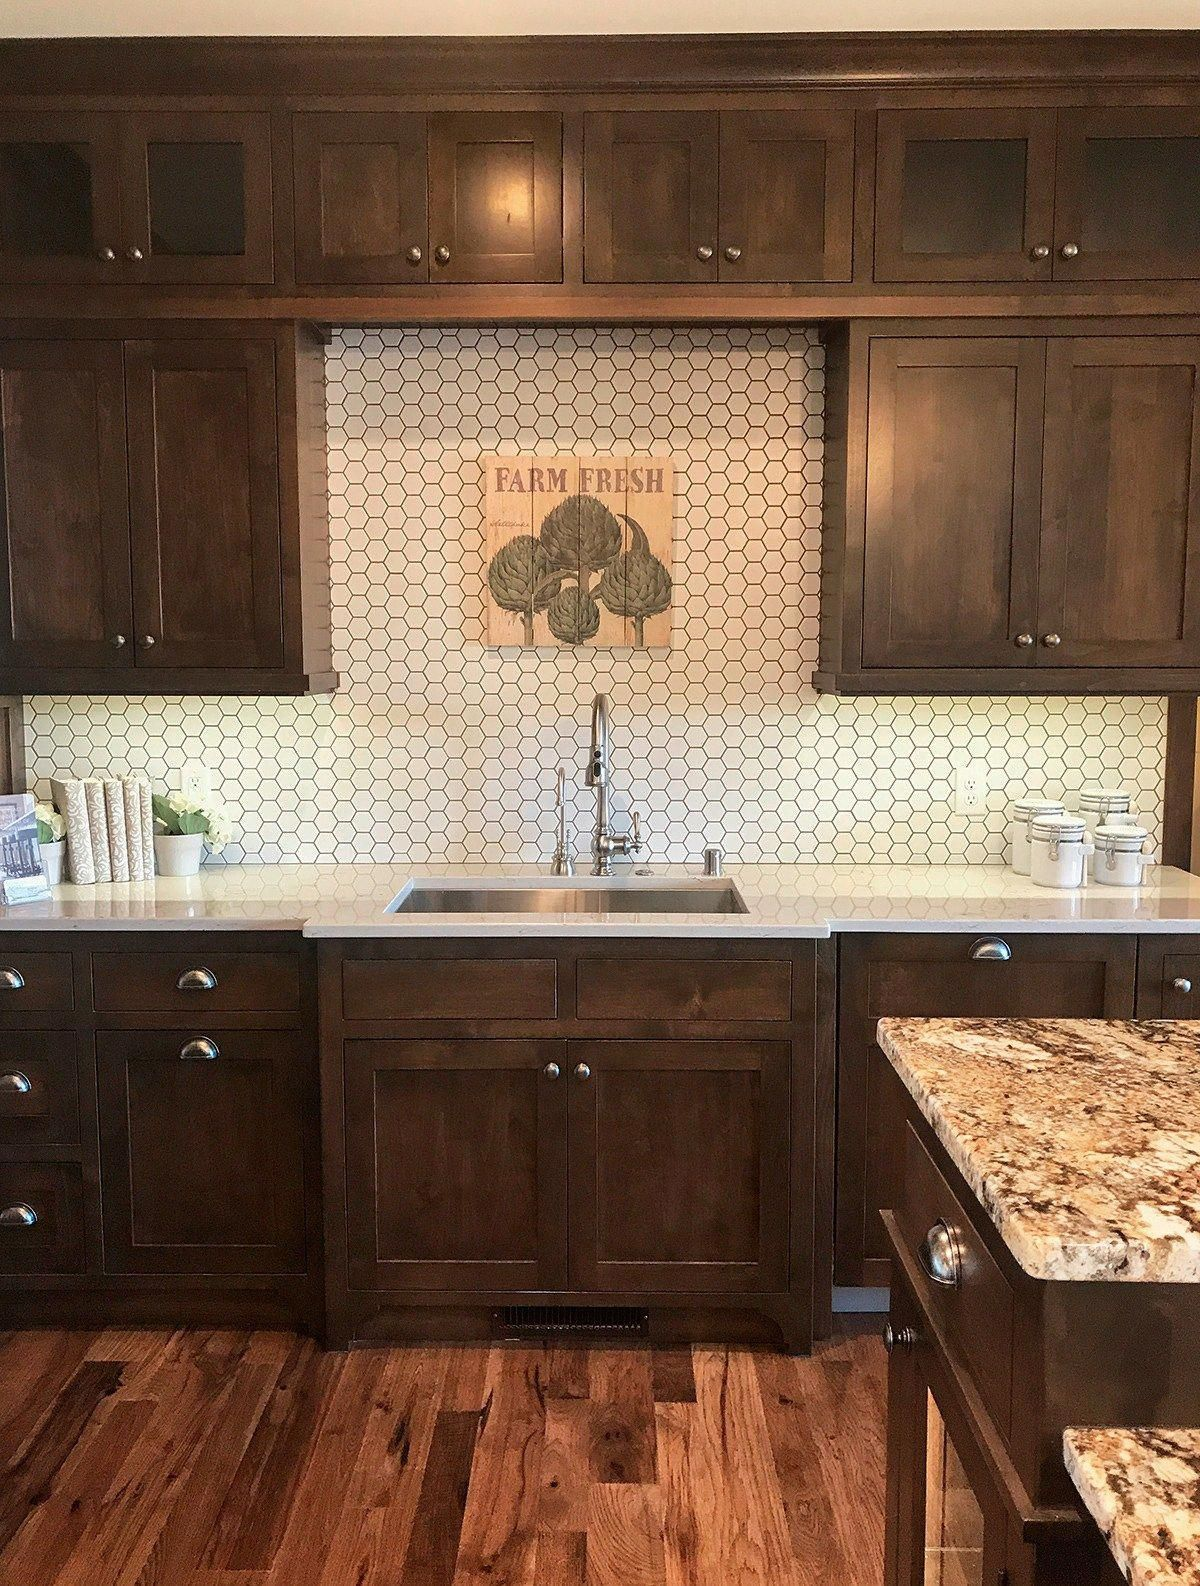 Backsplash Trends Great Contrast In This Kitchen Warm Brown Cabinets Rustic Wood Flo Dark Wood Kitchen Cabinets Backsplash With Dark Cabinets Brown Cabinets